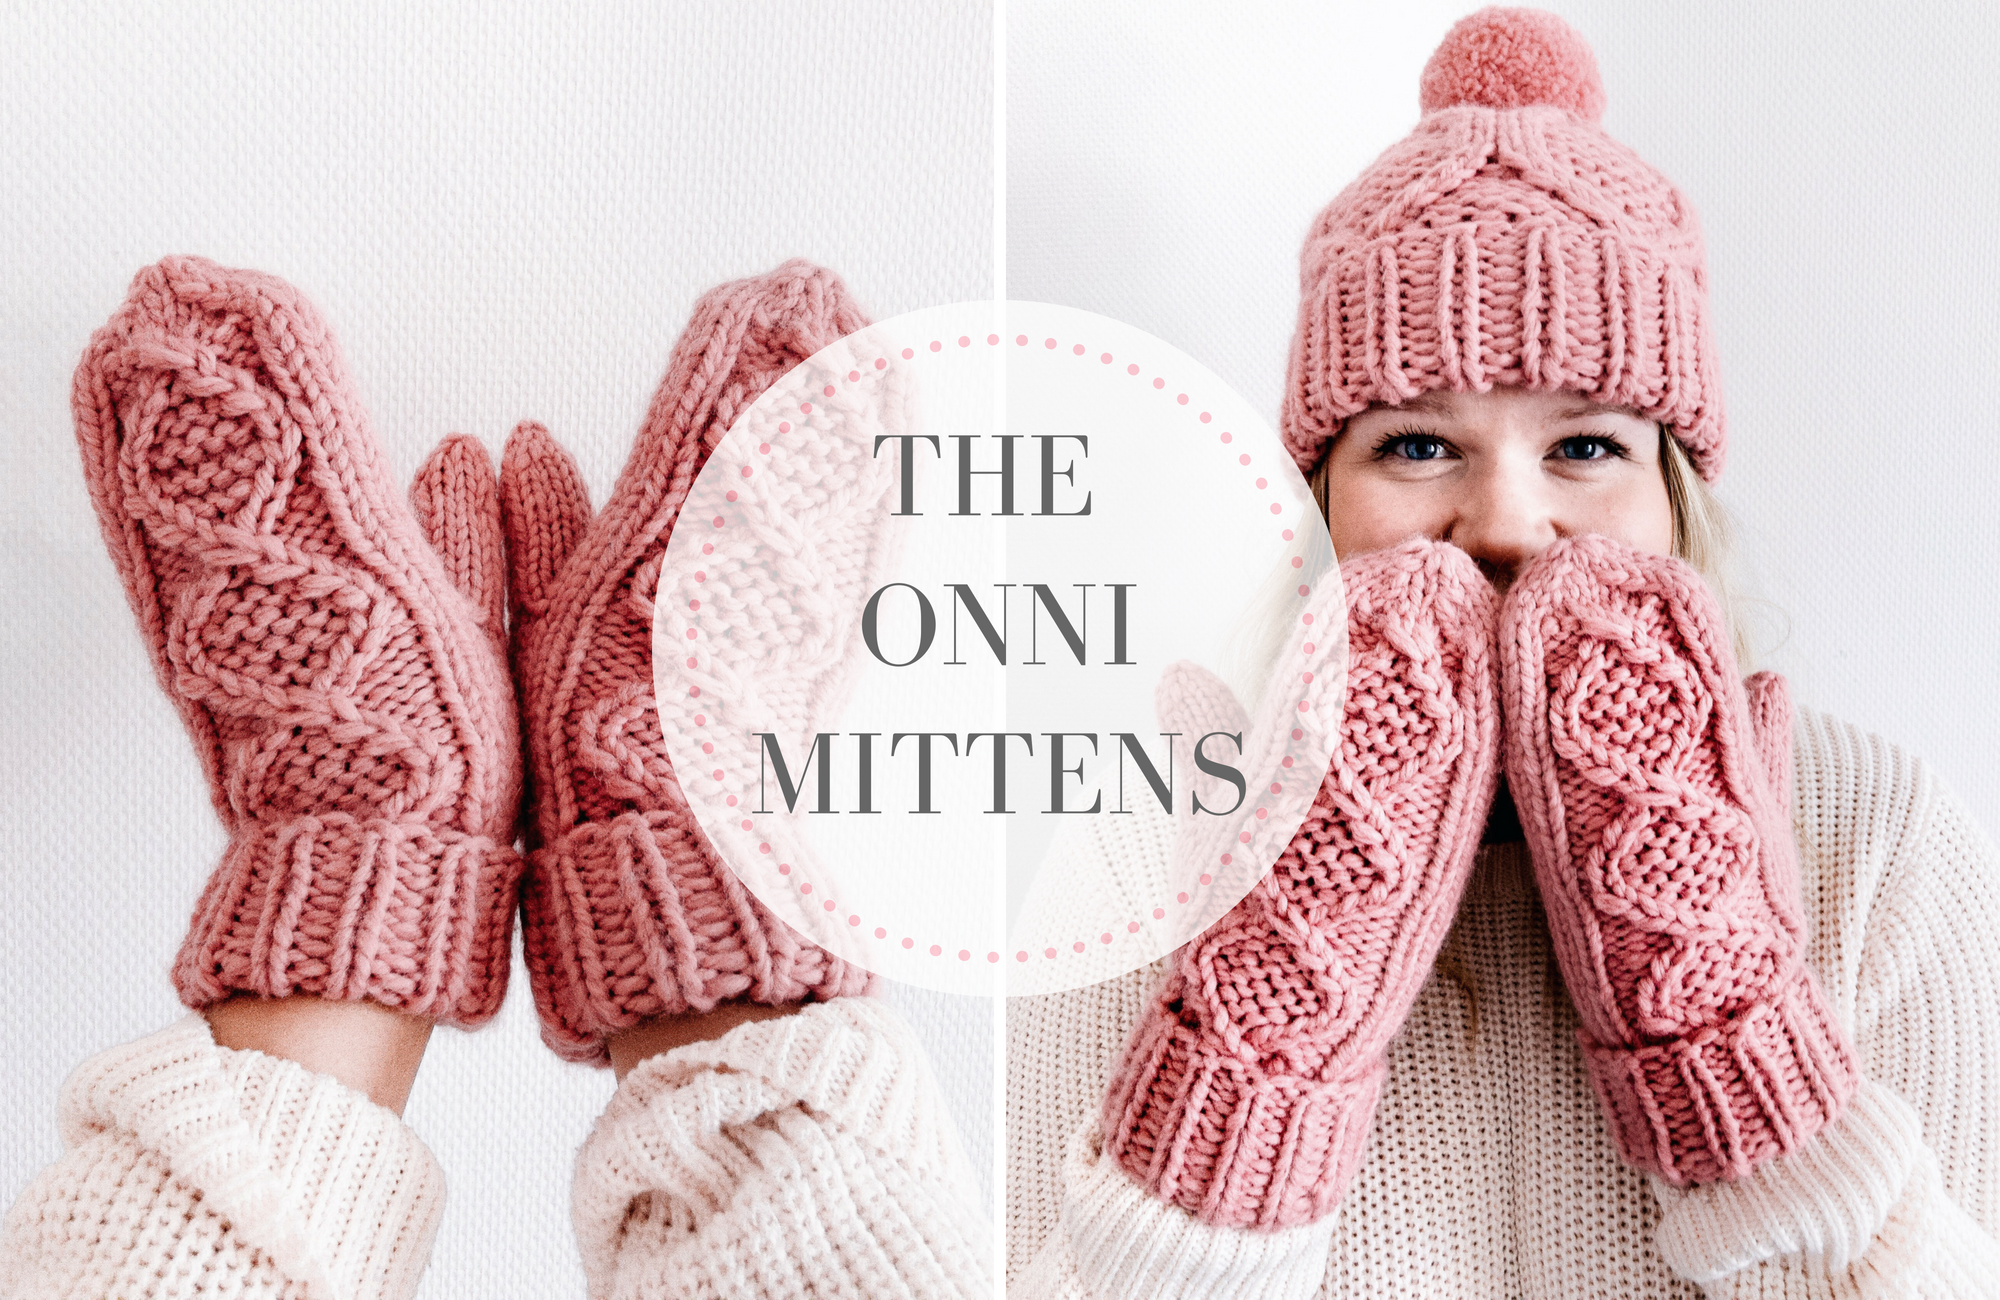 Free knitting pattern: The Onni Mittens - Katimaaria